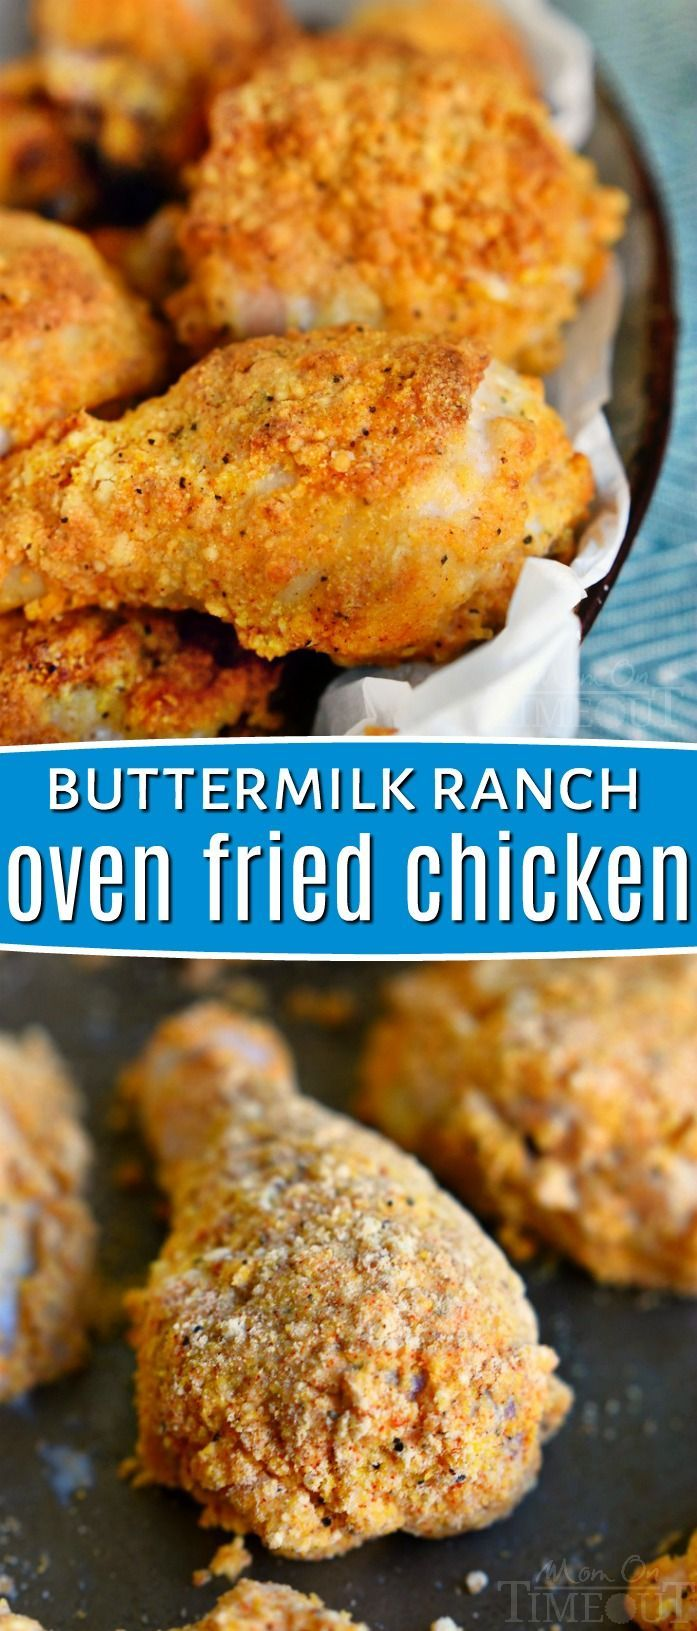 This Buttermilk Ranch Oven Fried Chicken Is Bound To Become A New Family Favorite This Recipe Is Per Best Chicken Recipes Fries In The Oven Oven Fried Chicken